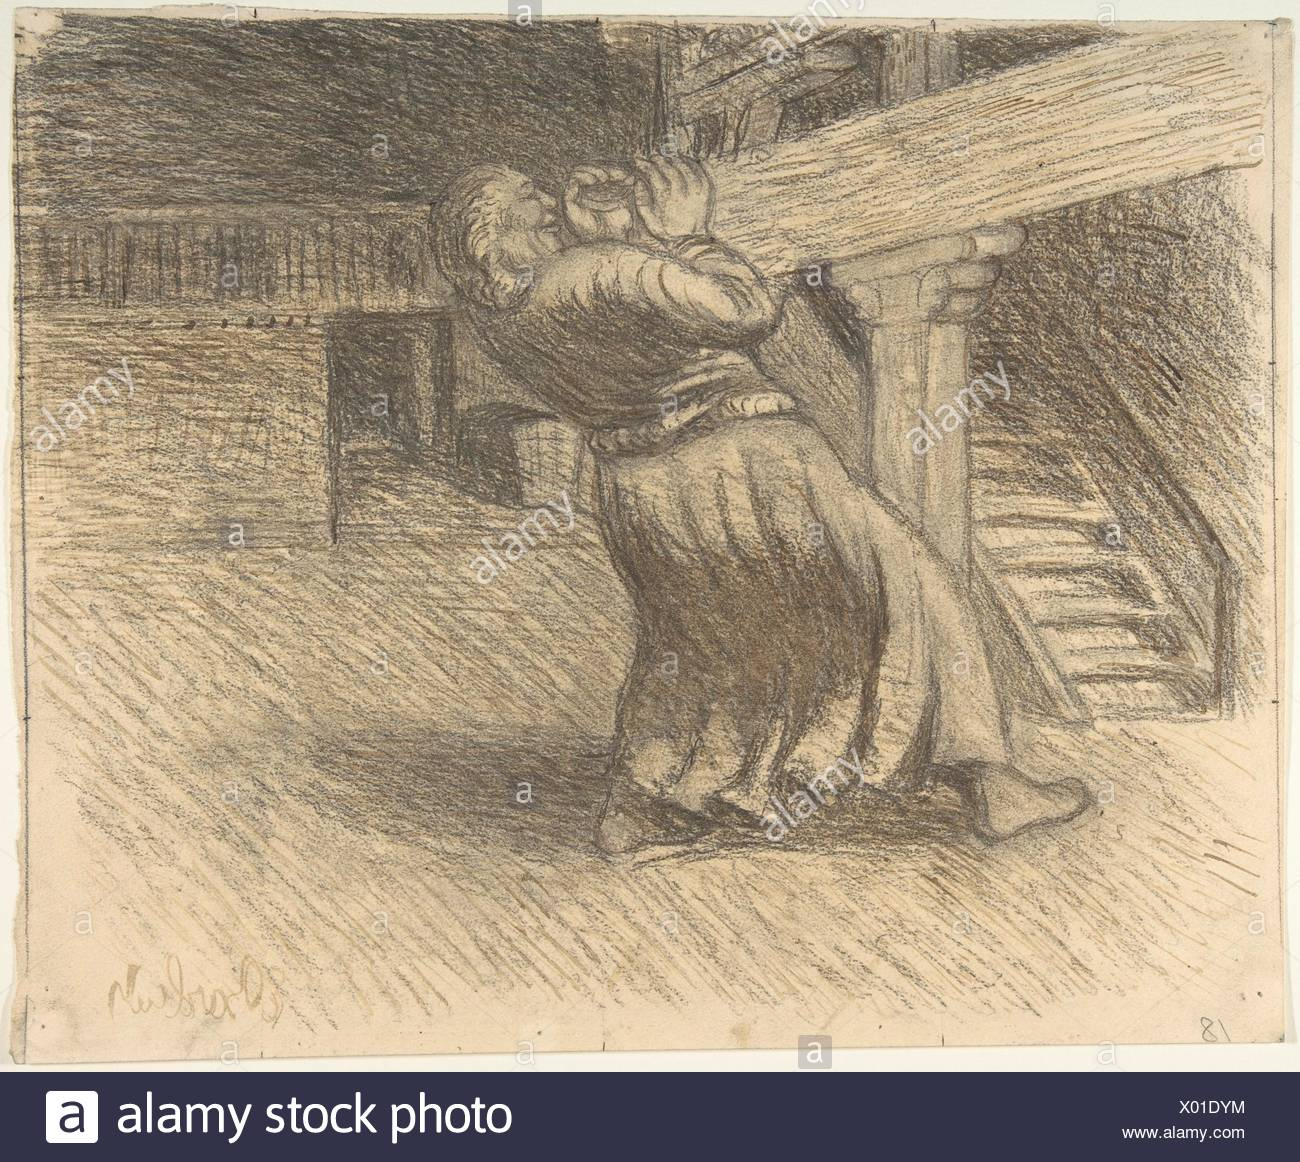 The Invisible. Artist: Ernst Barlach (German, Wedel 1870-1938 Rostock); Date: late 19th-mid-20th century; Medium: Pen and ink, pencil and charcoal on - Stock Image